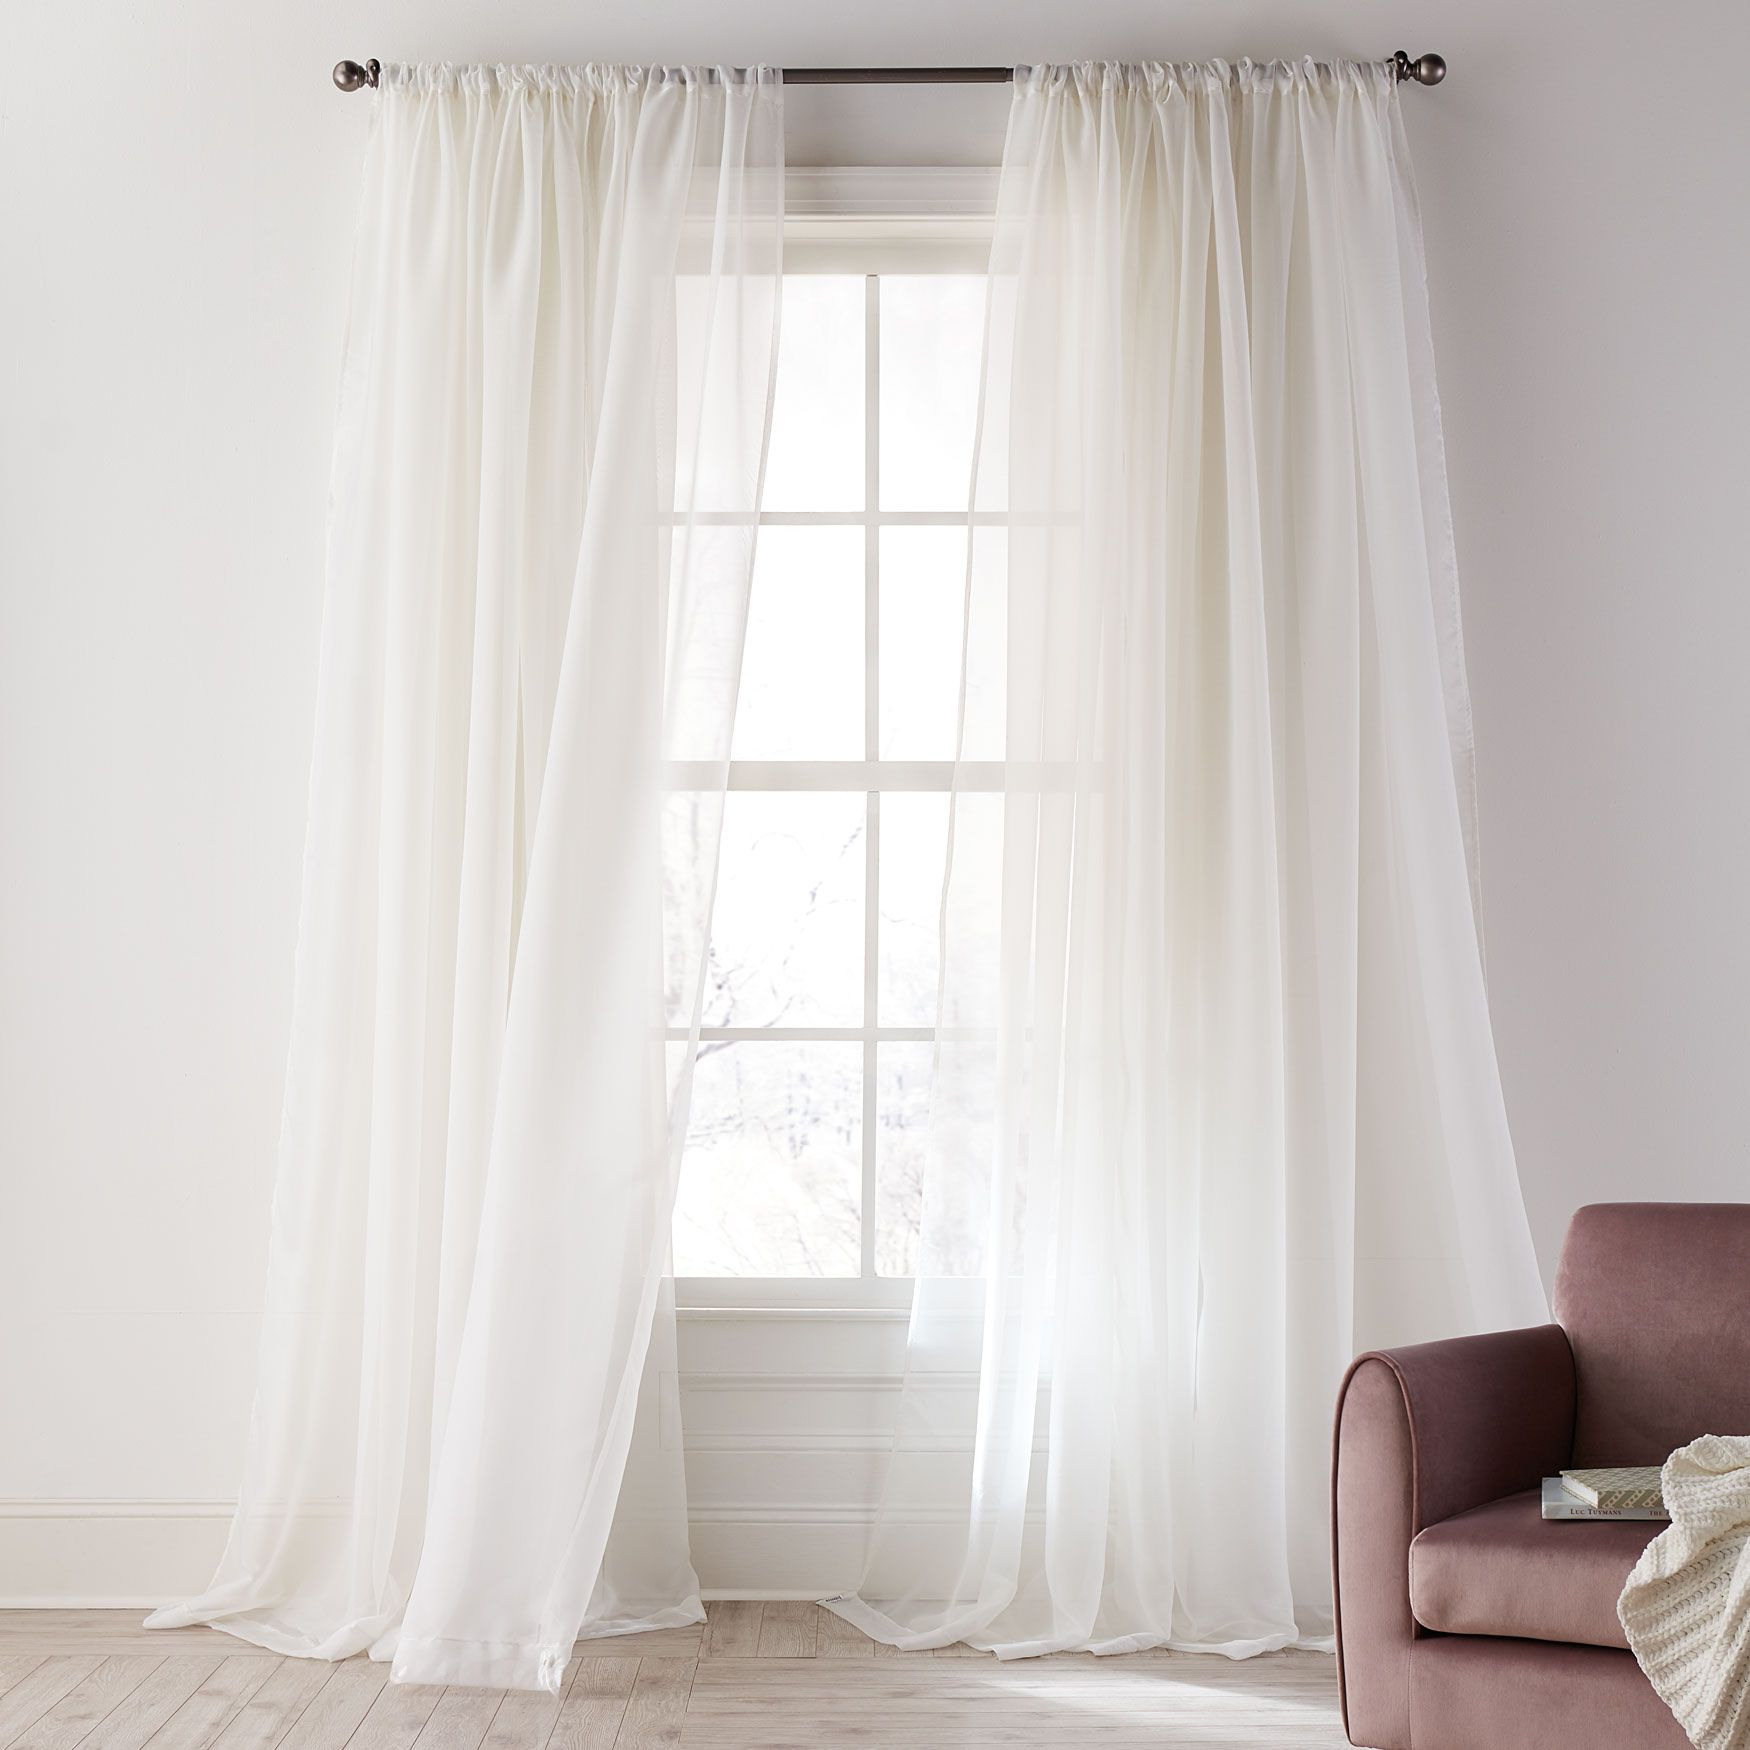 Ophelia Shimmer Curtain Sheer Curtains Brylane Home In 2020